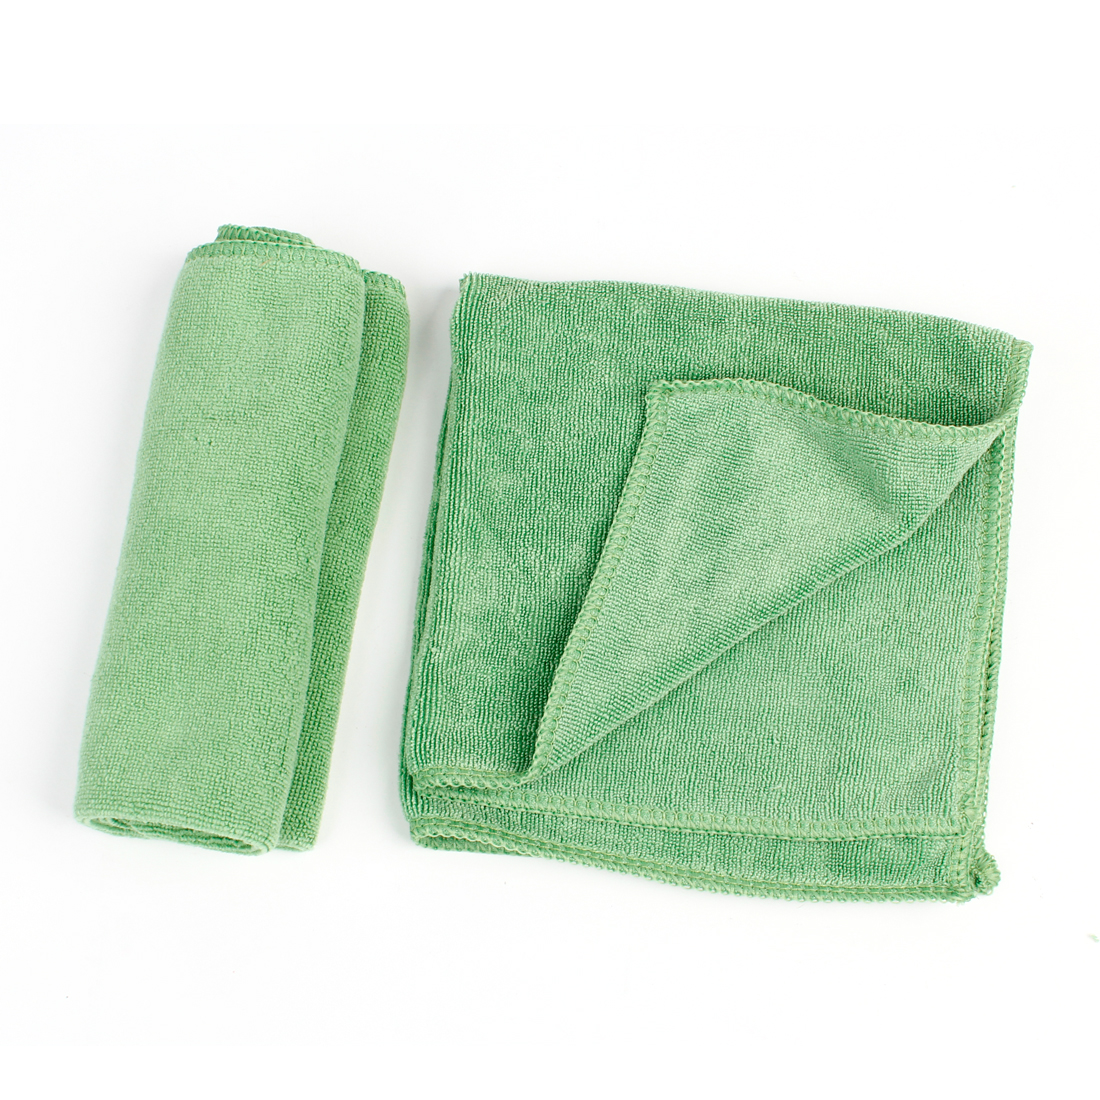 2pcs Green Rectangle Soft Microfiber Window Cleaning Towel 34cm x 34cm for Car